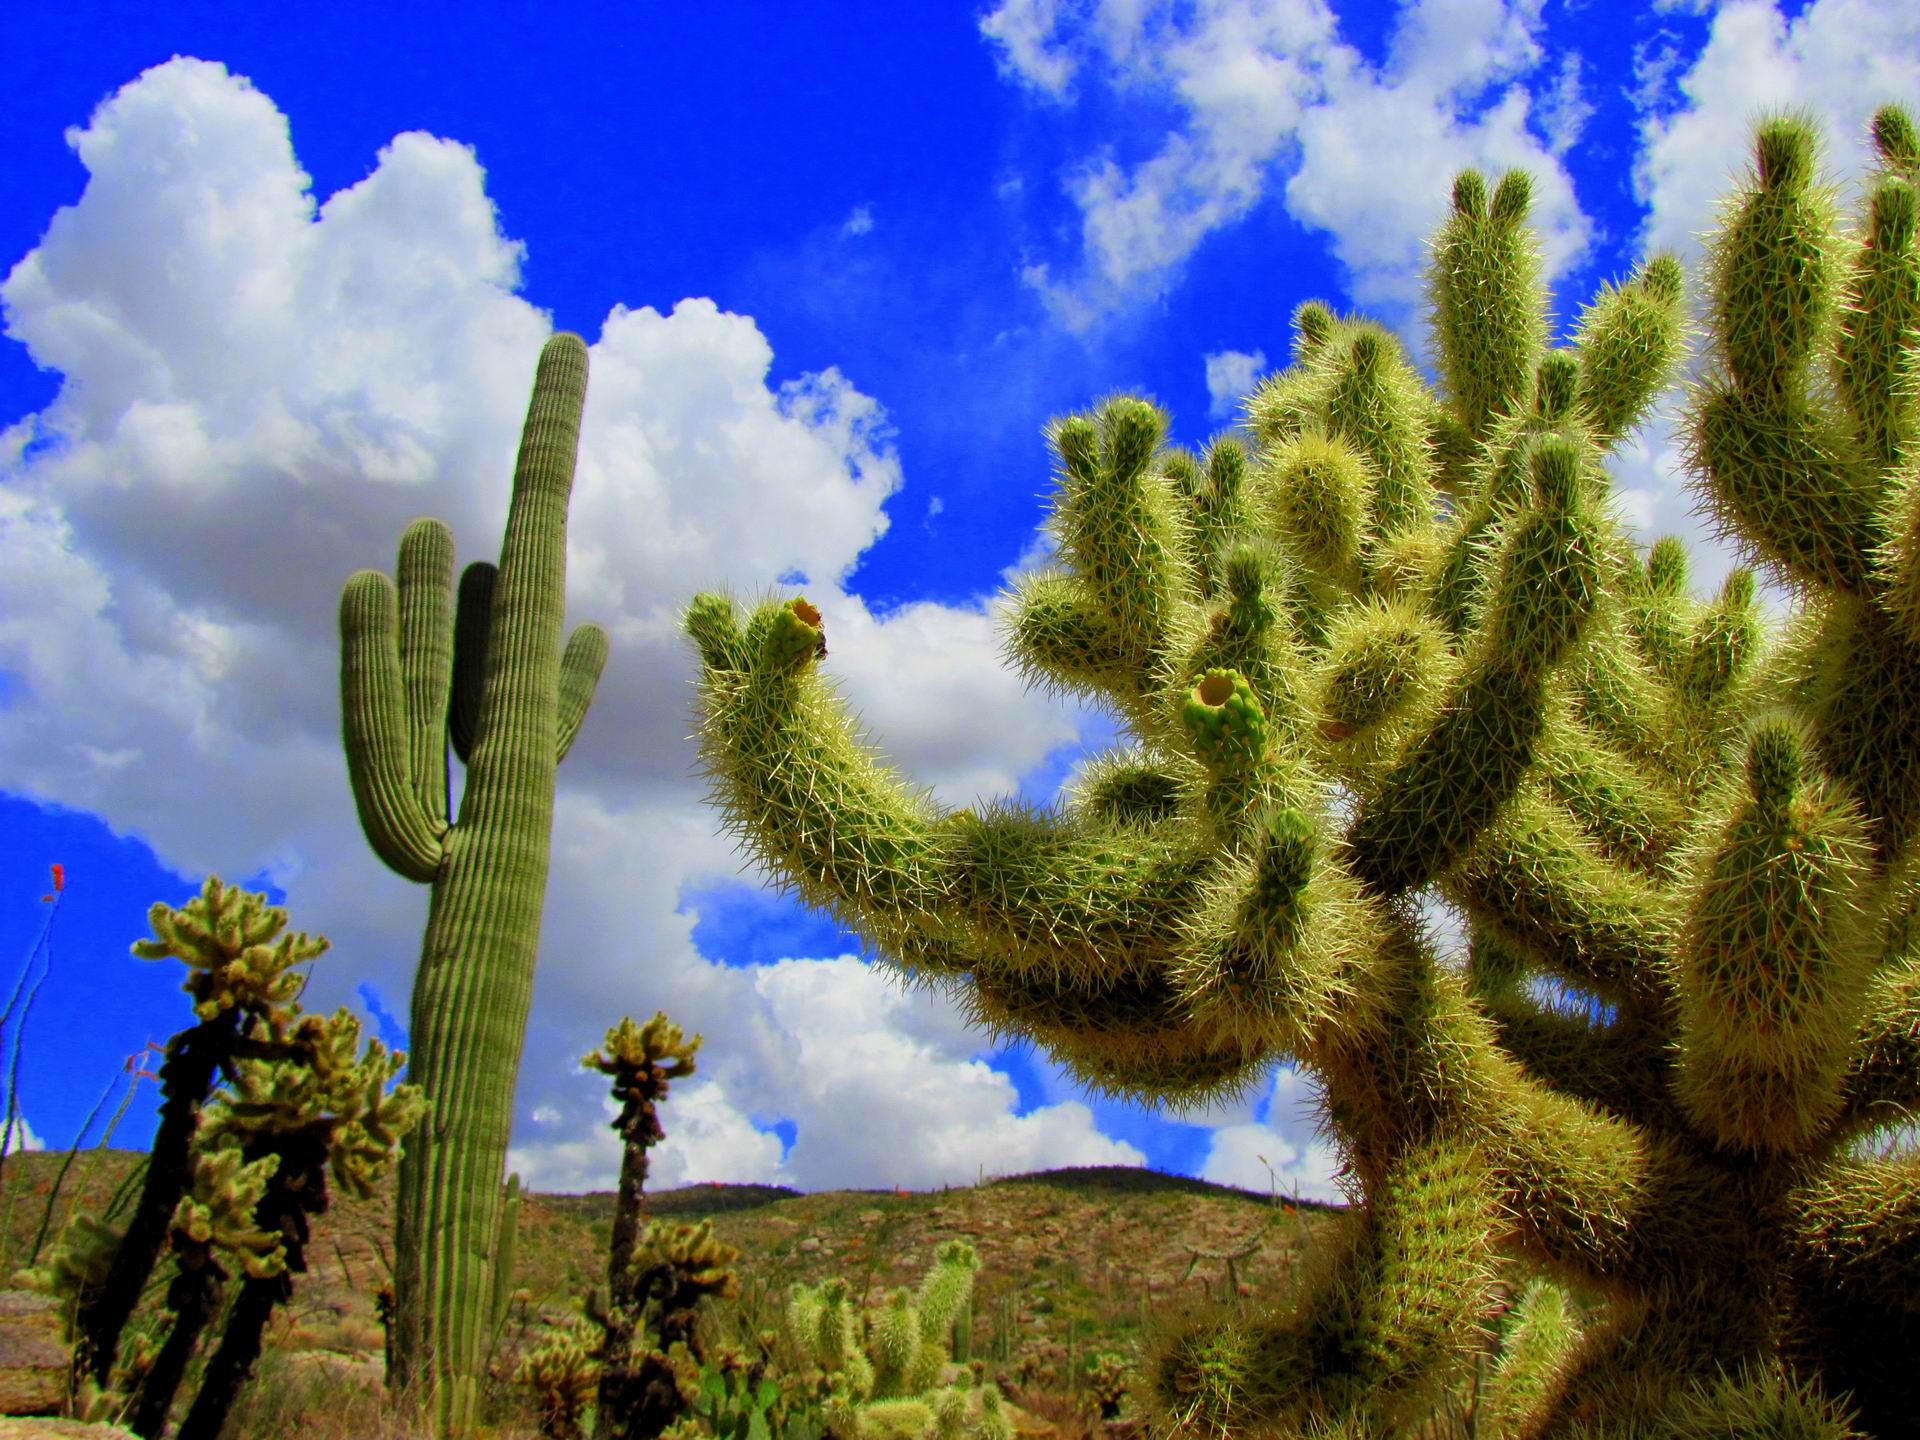 Best 41 Saguaro National Park Wallpaper on HipWallpaper 1920x1440